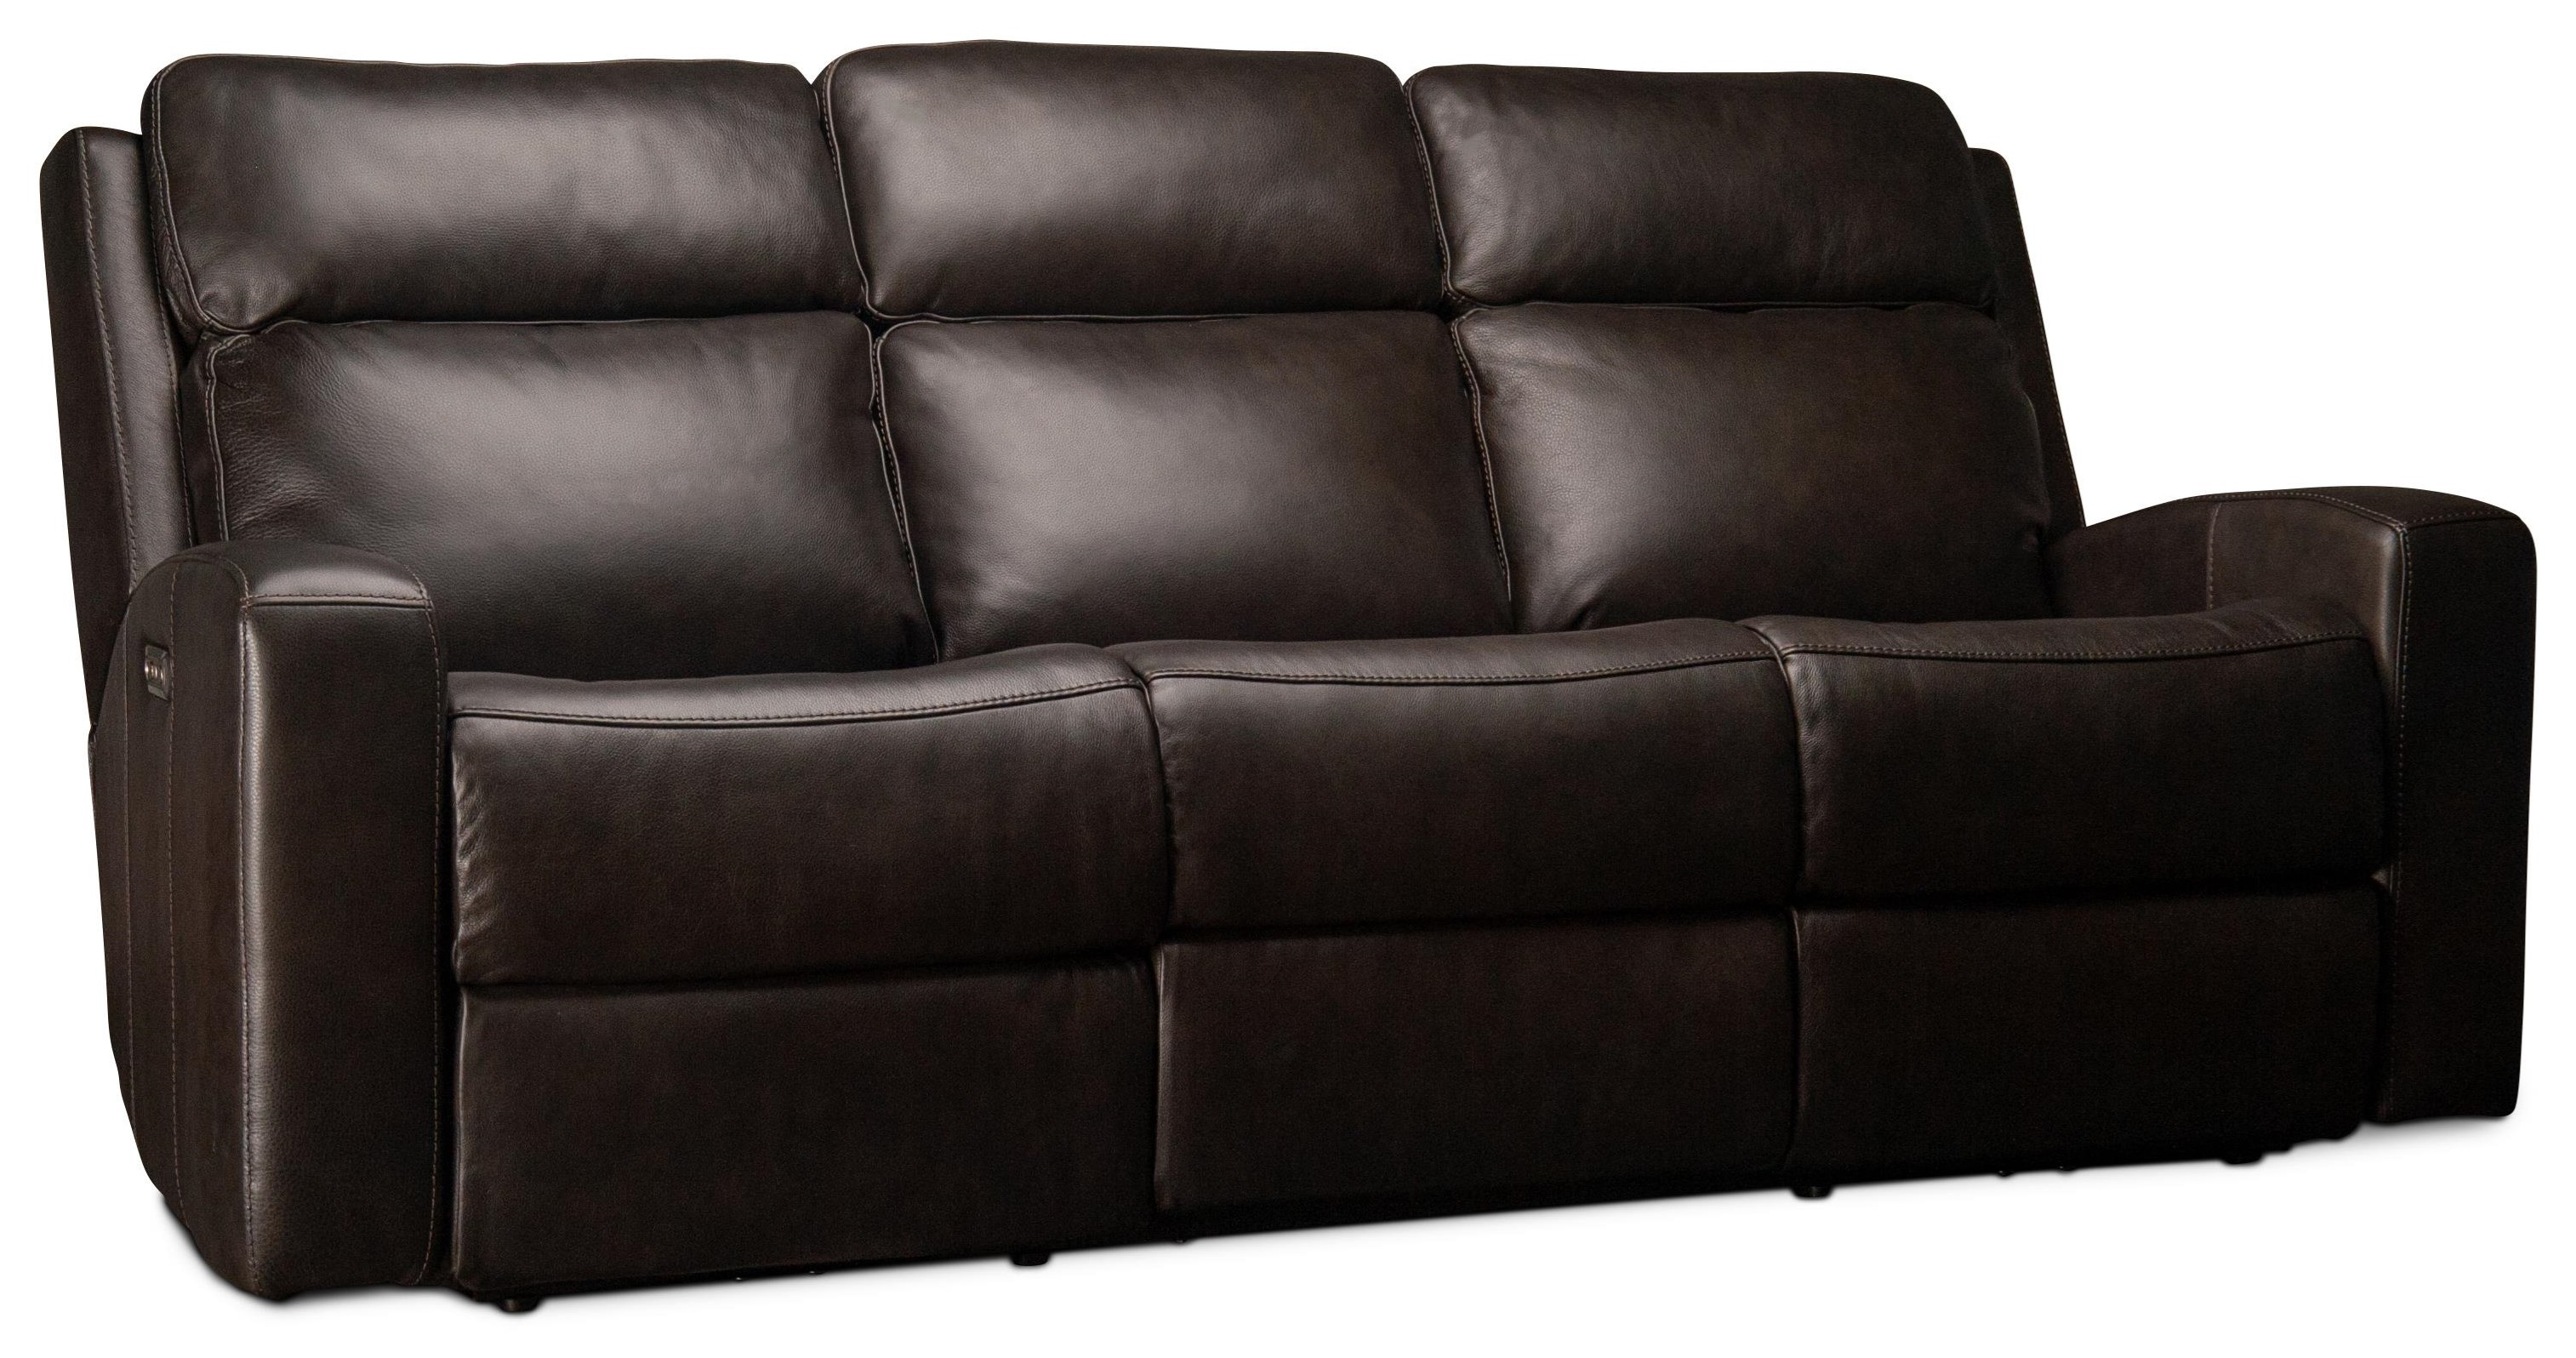 Cordelia Cordelia Leather Match Power Sofa by Flexsteel Wynwood Collection at Morris Home